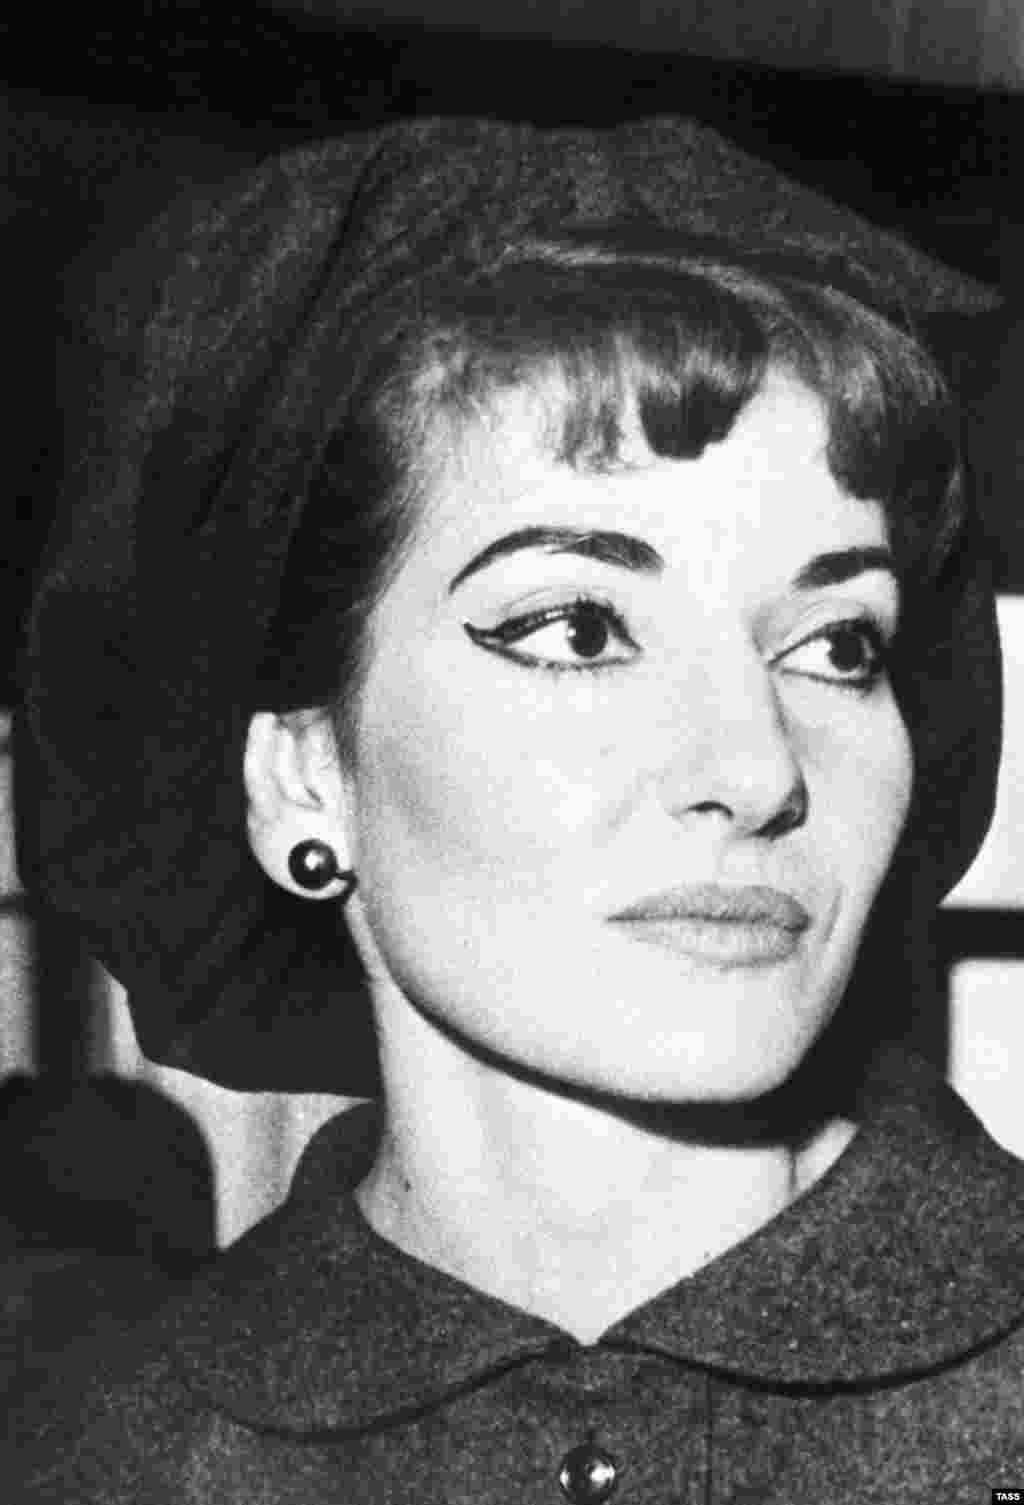 Callas, considered both a diva and a fashion icon, on June 19, 1961